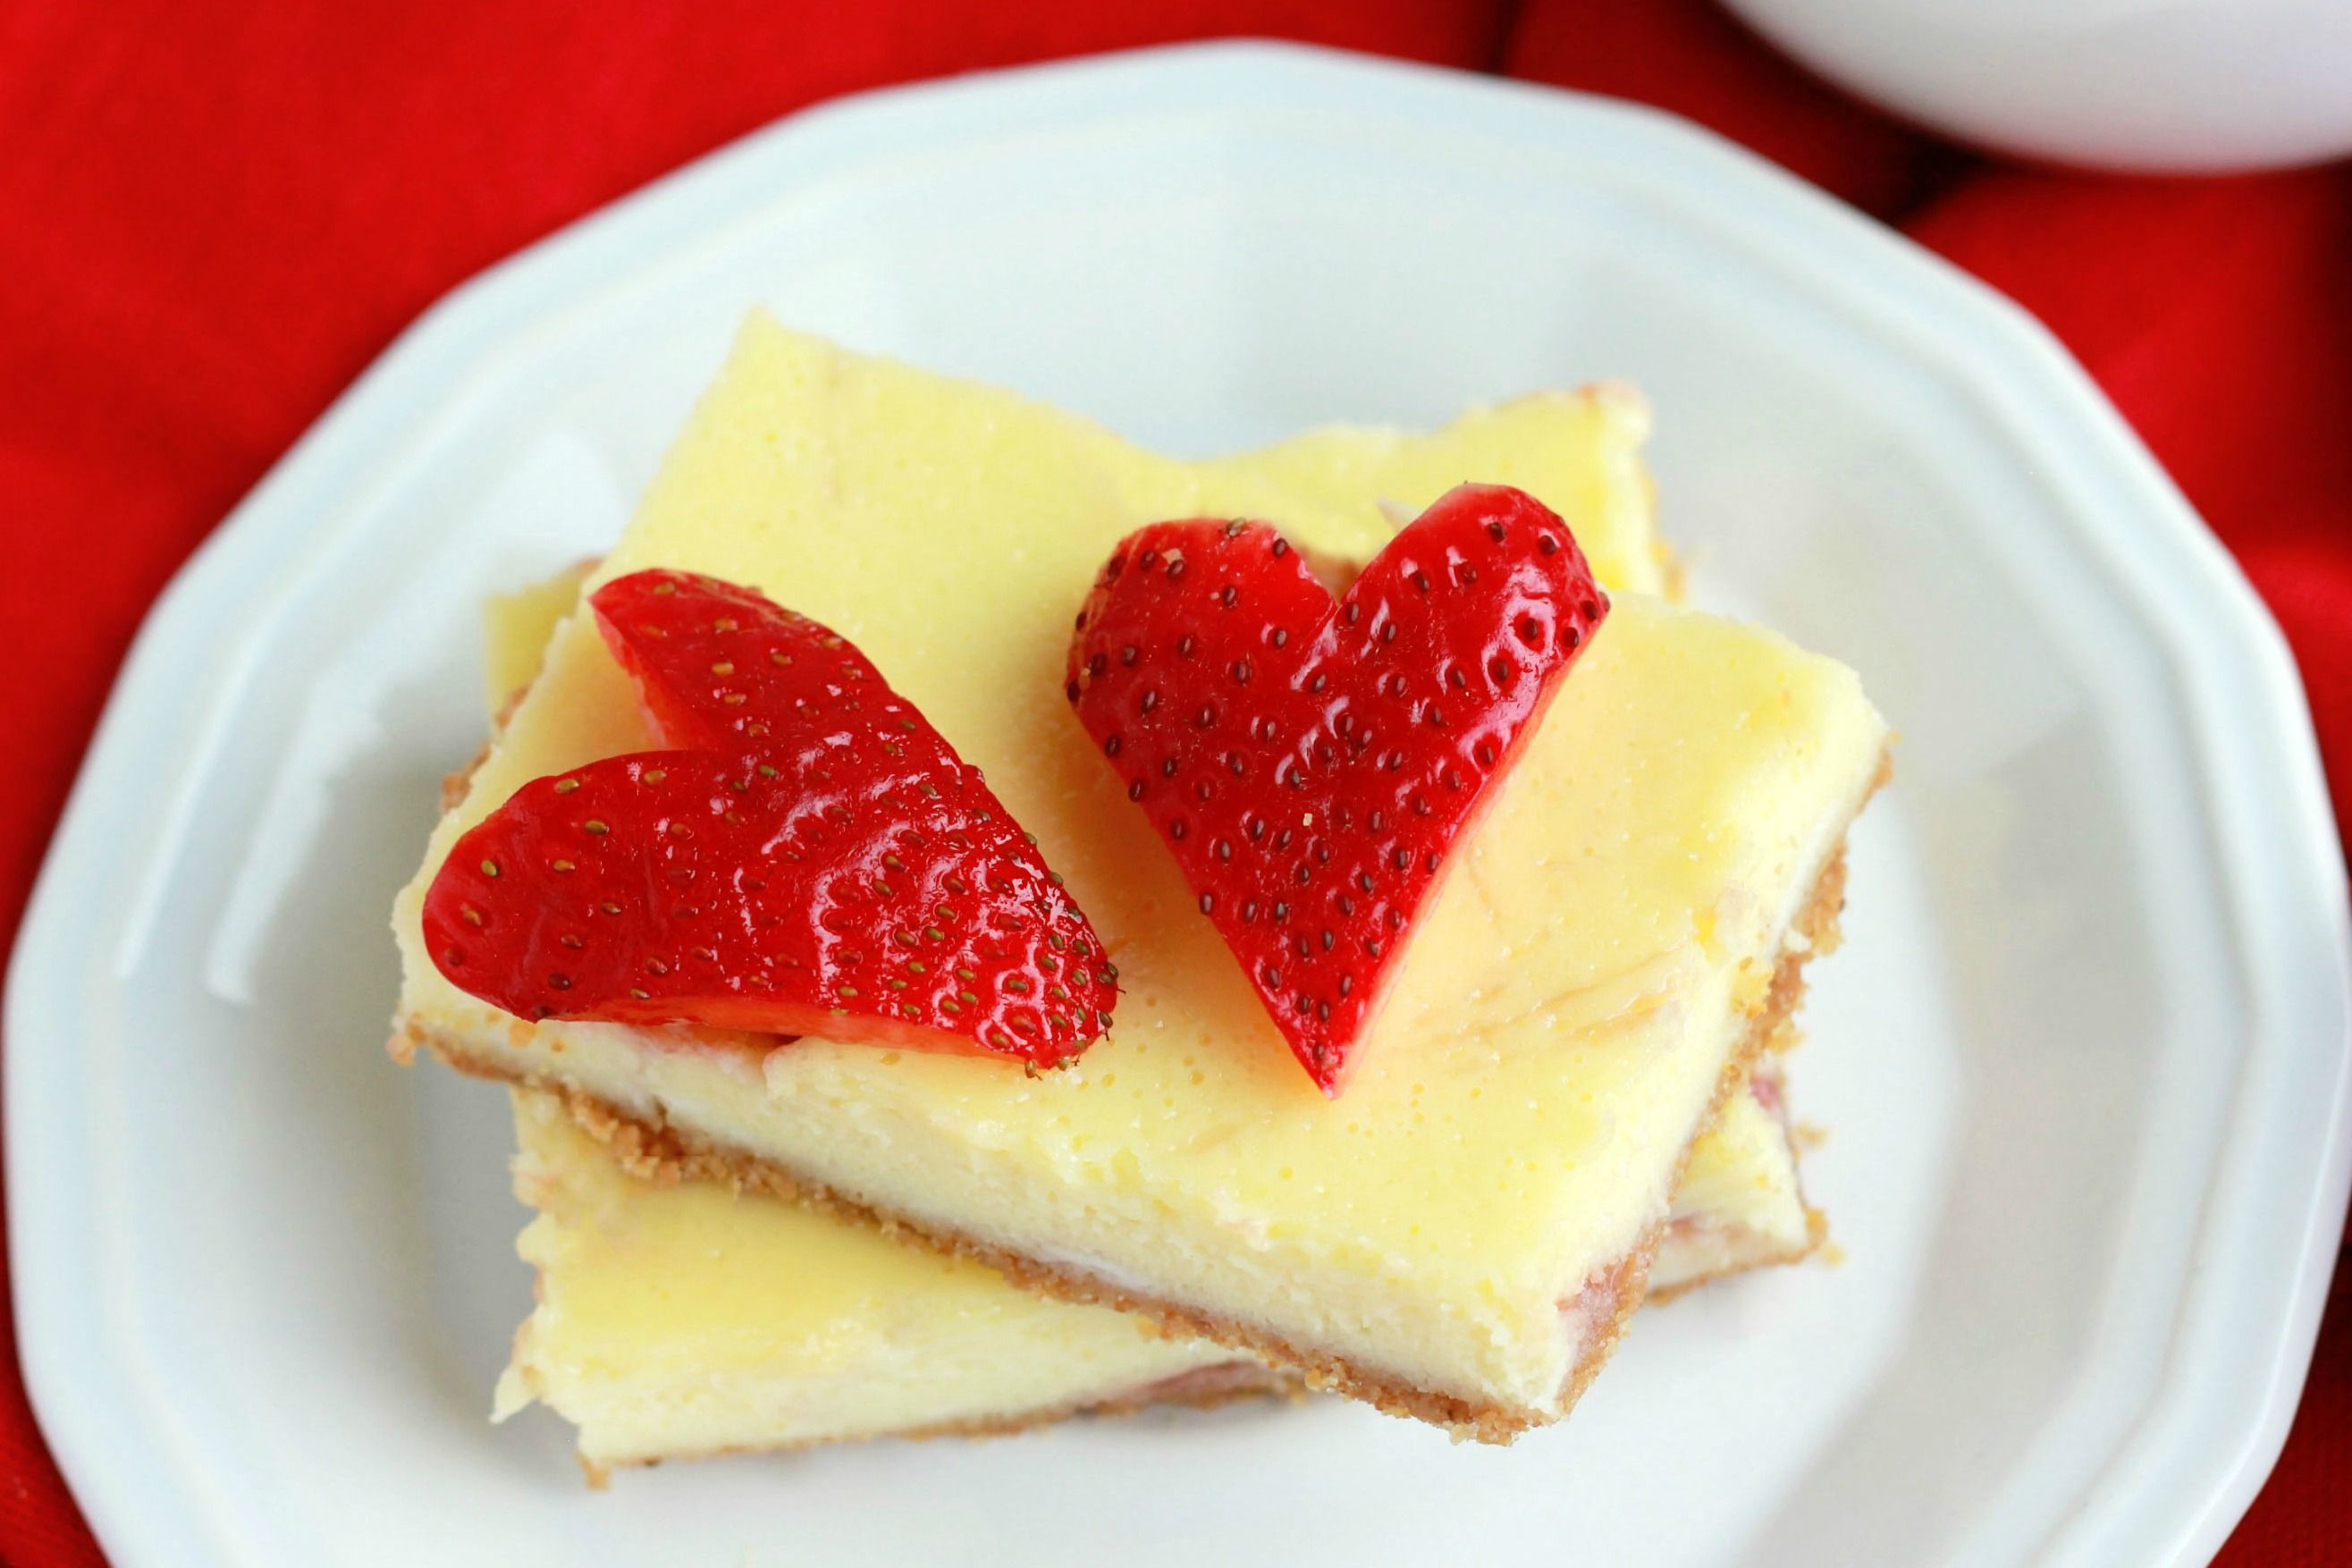 These Strawberry Cheesecake bars take less than 30 minutes and are the perfect way to celebrate any occasion.